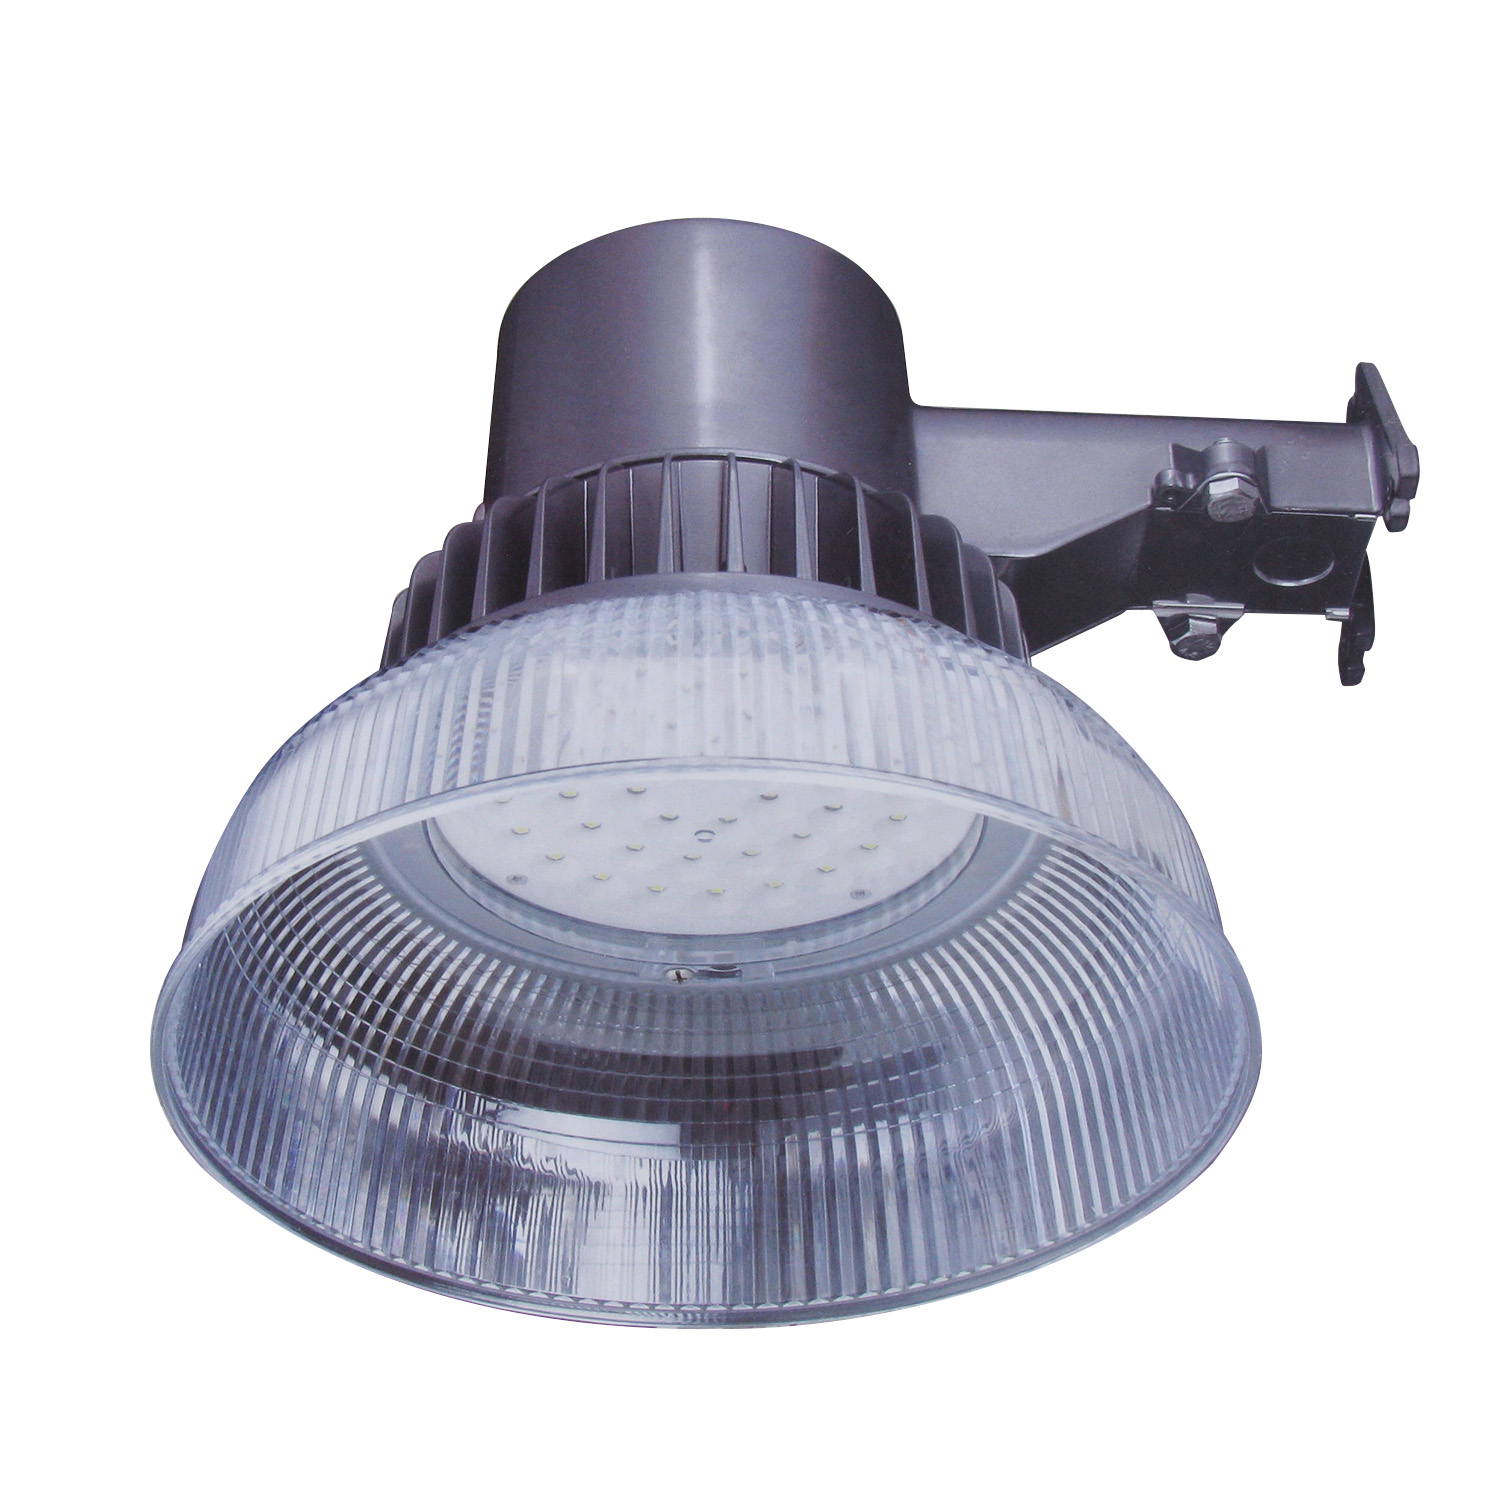 hight resolution of honeywell led security light in aluminum construction 4000 lumens ma0201 82 honeywell store